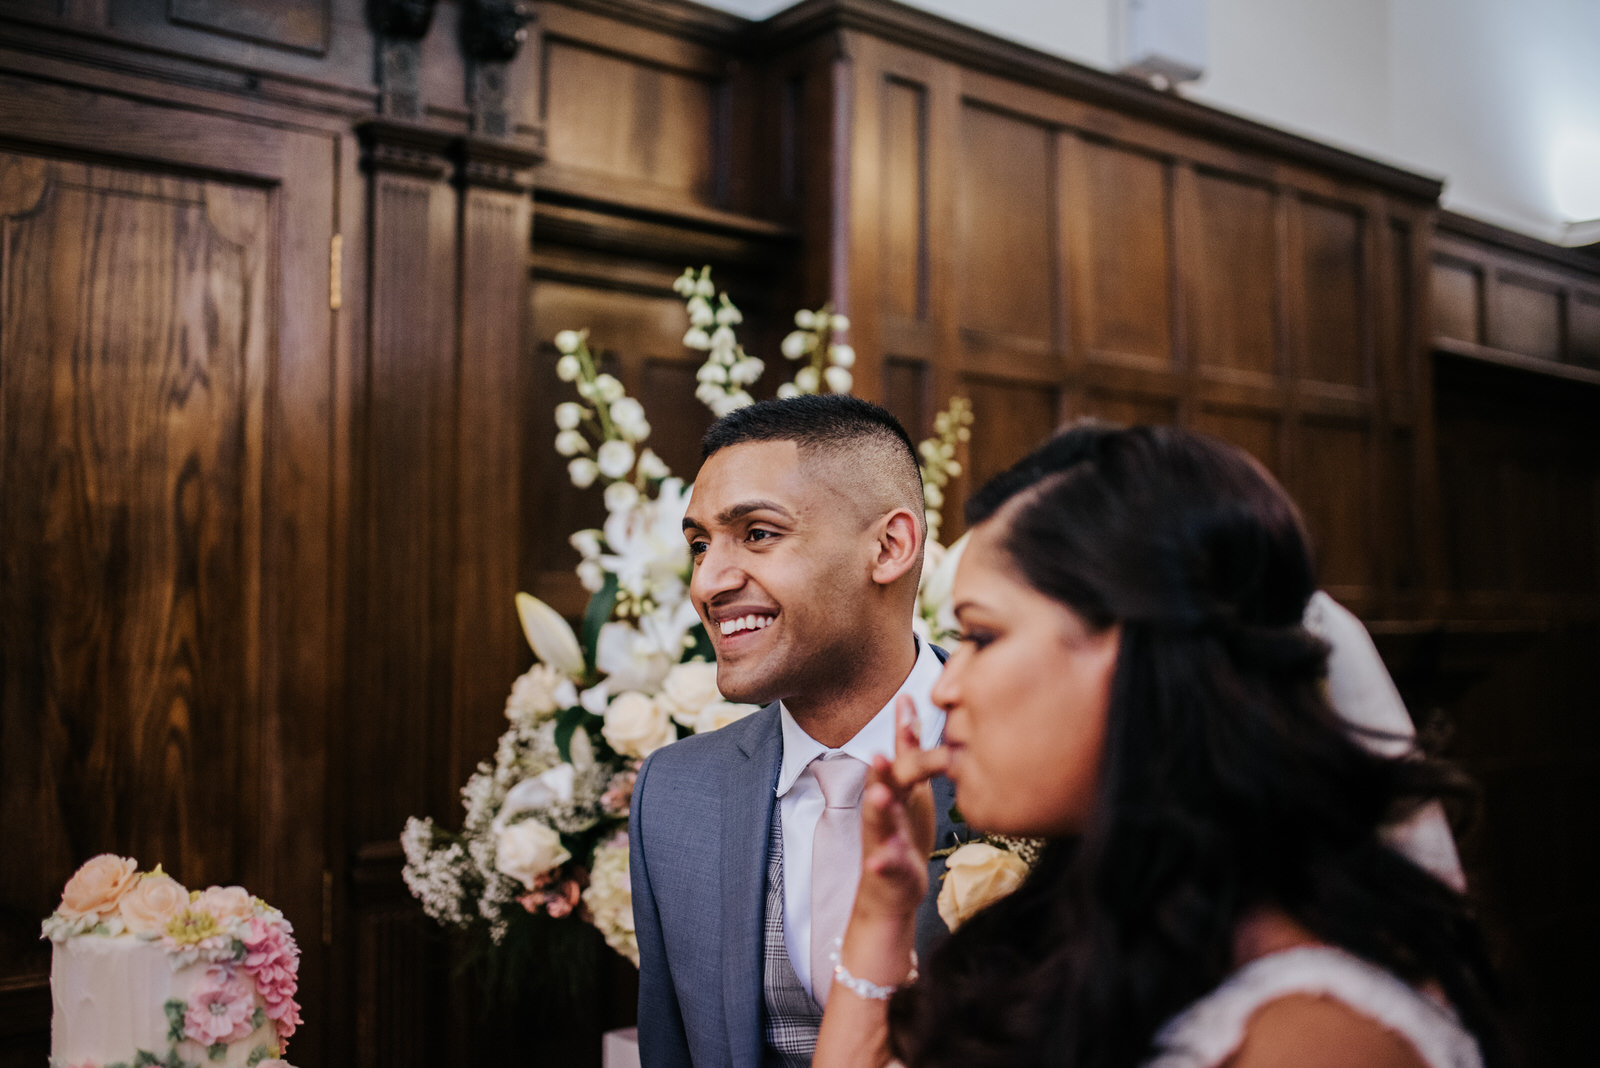 Groom smiles after he finishes eating a piece of cake